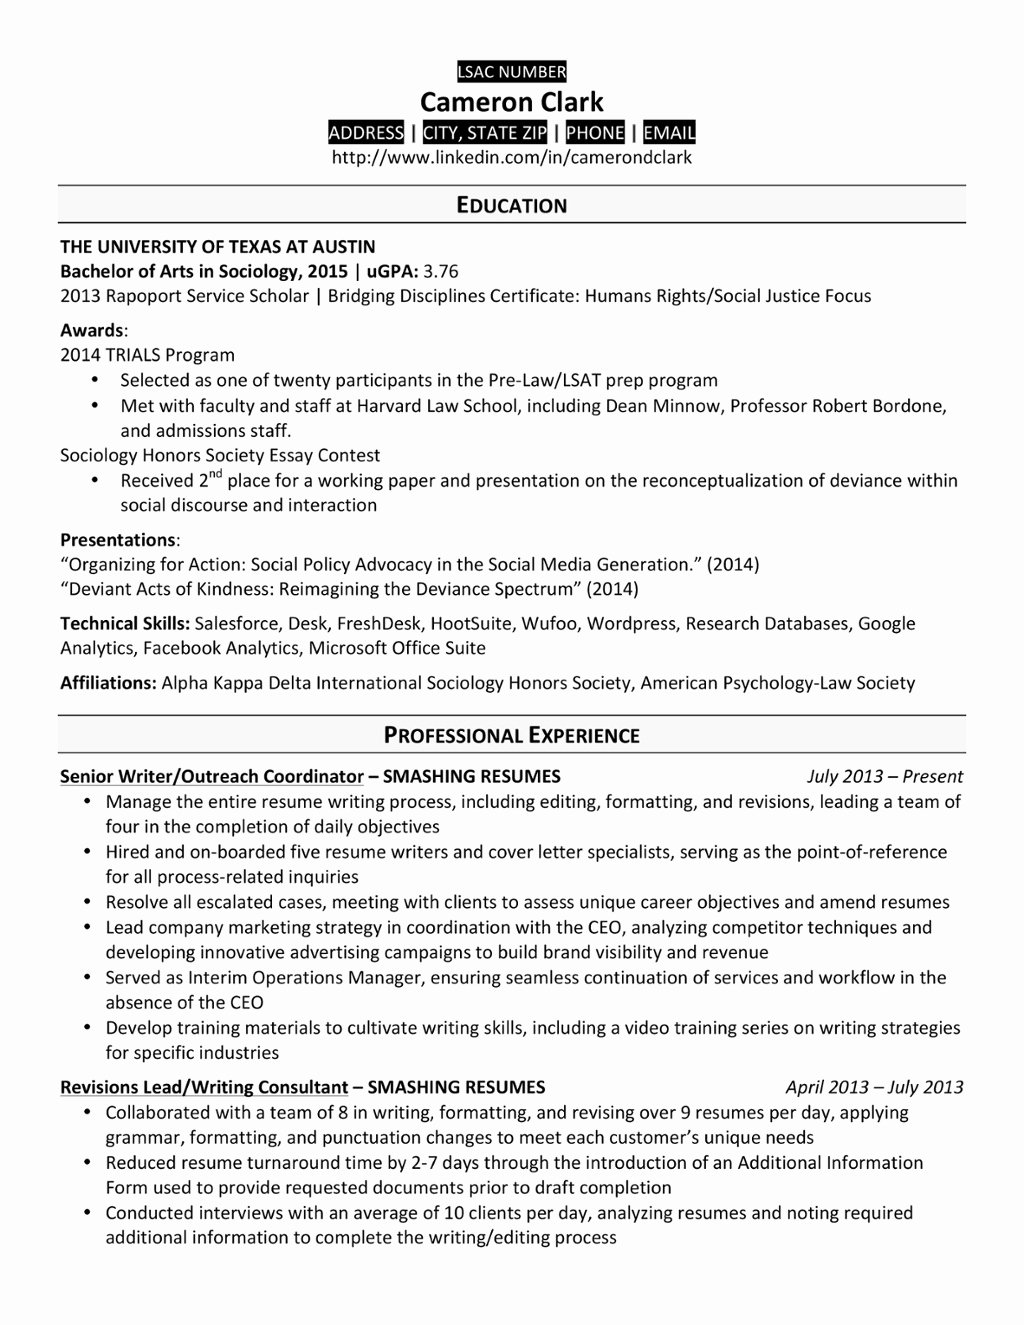 Graduate School Cv Template Awesome A Law School Resume that Made the Cut